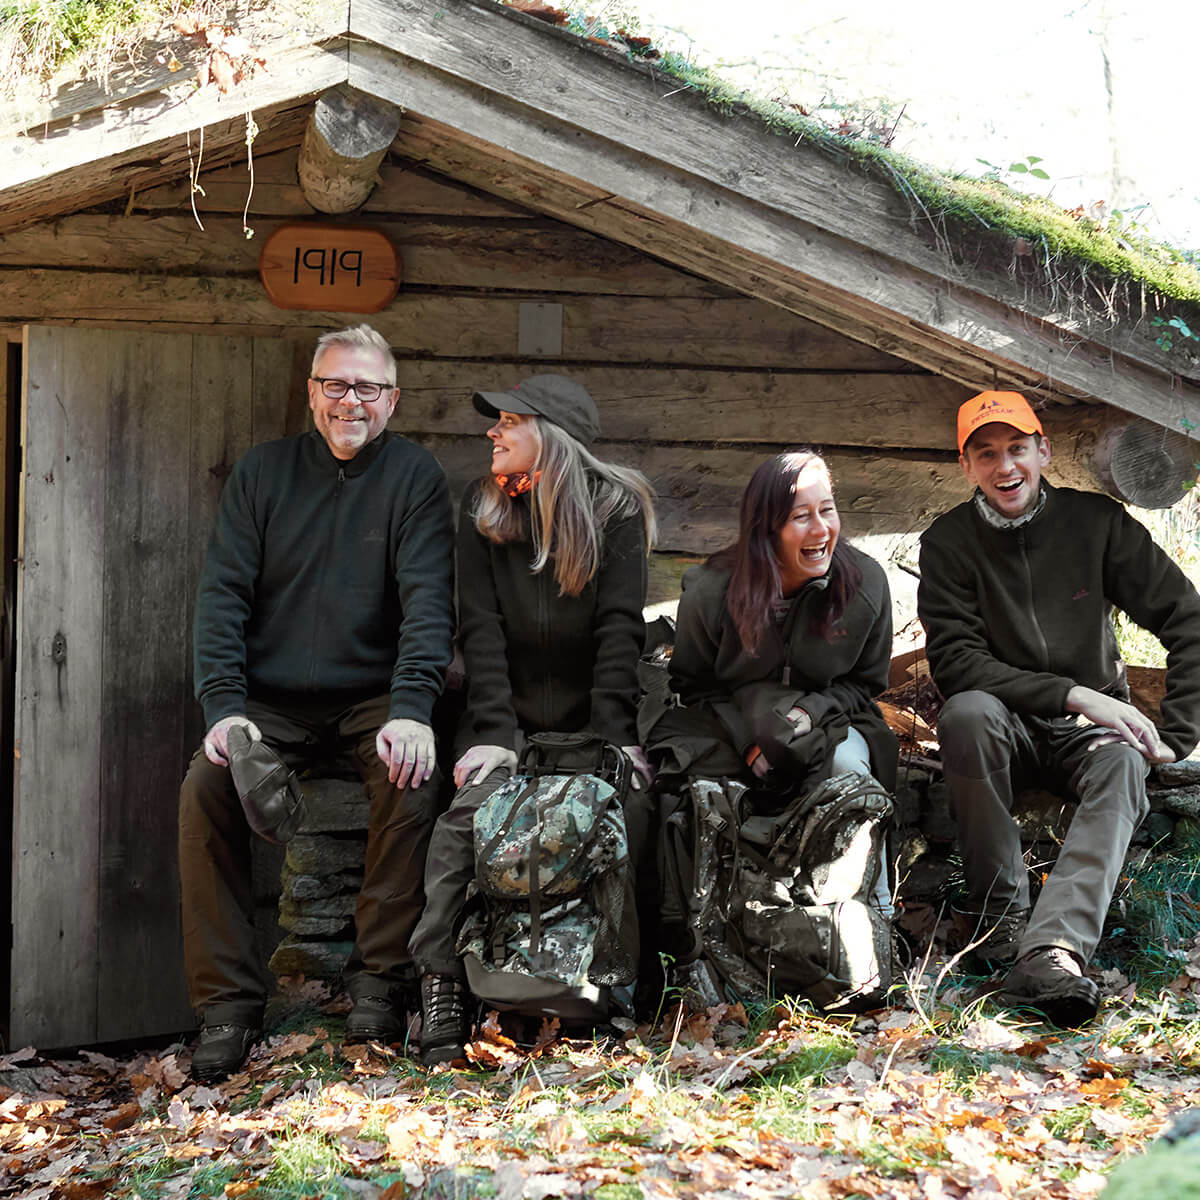 Swedteam hunters outside a hunting lodge